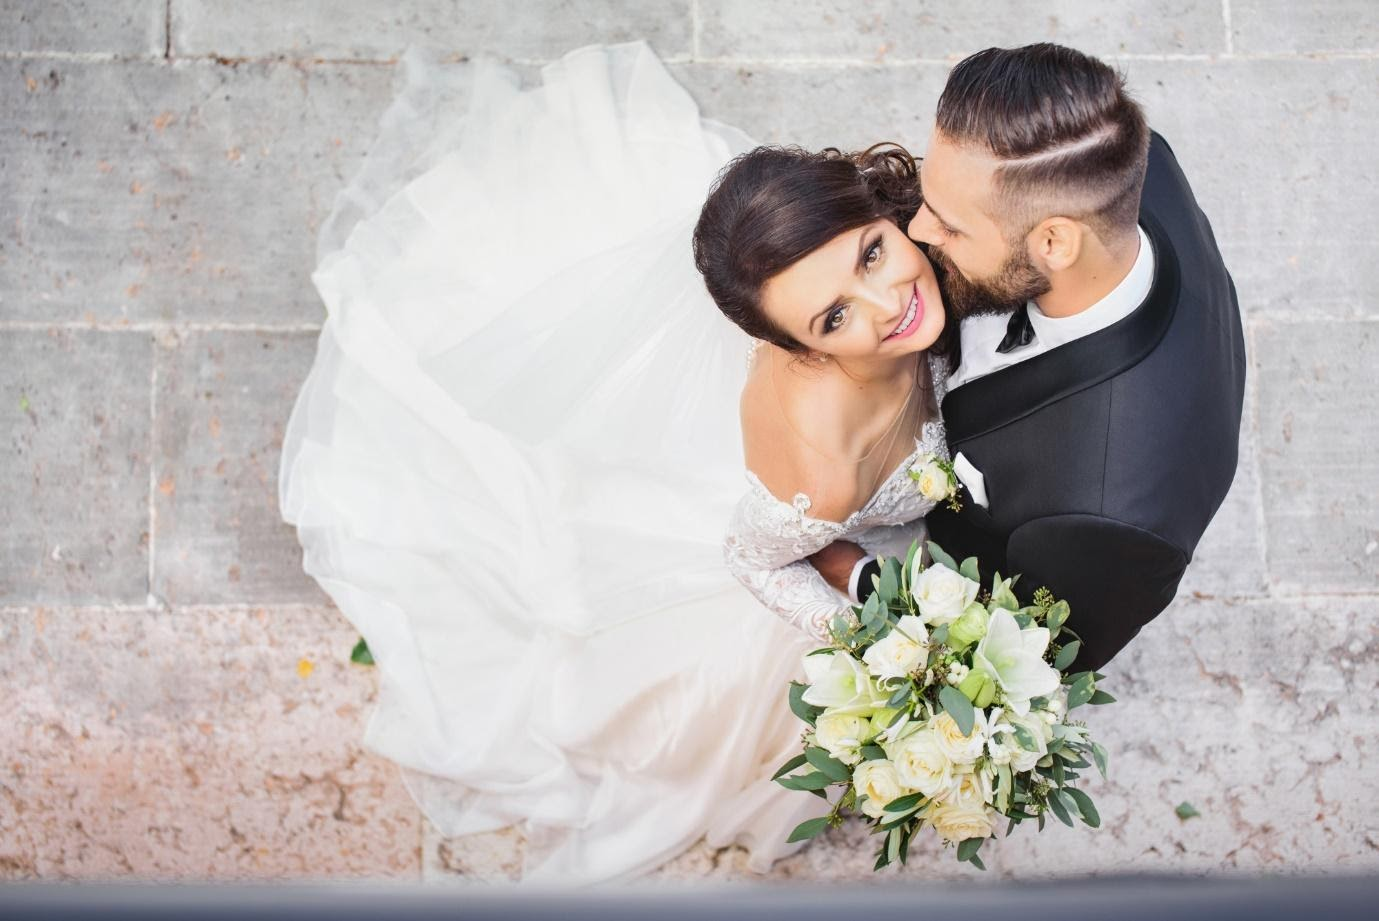 The Ultimate Guide On How to Plan a Wedding